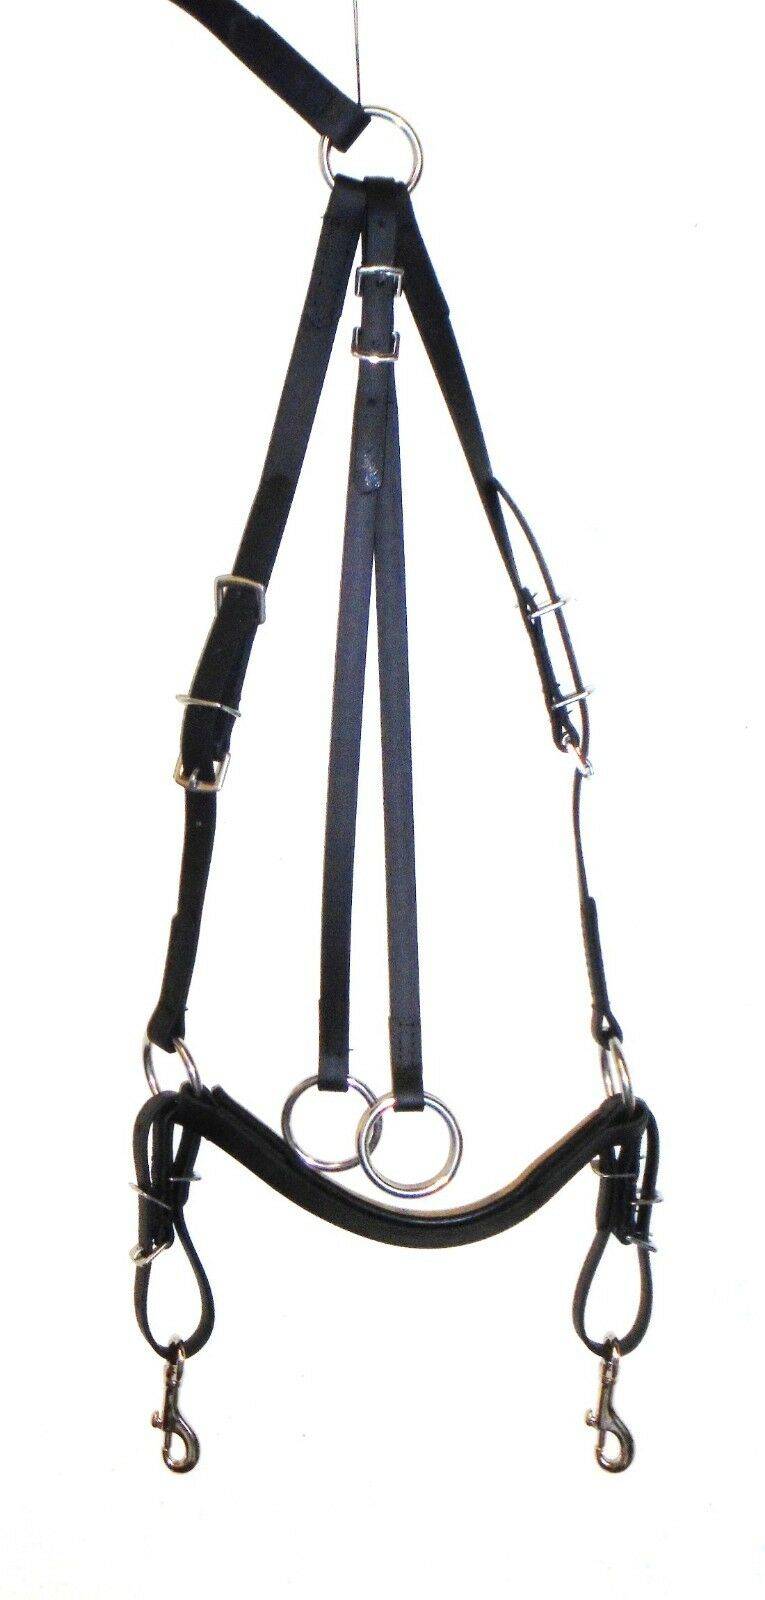 Hunting breastplate with running martingale attachment genuine beta biothane